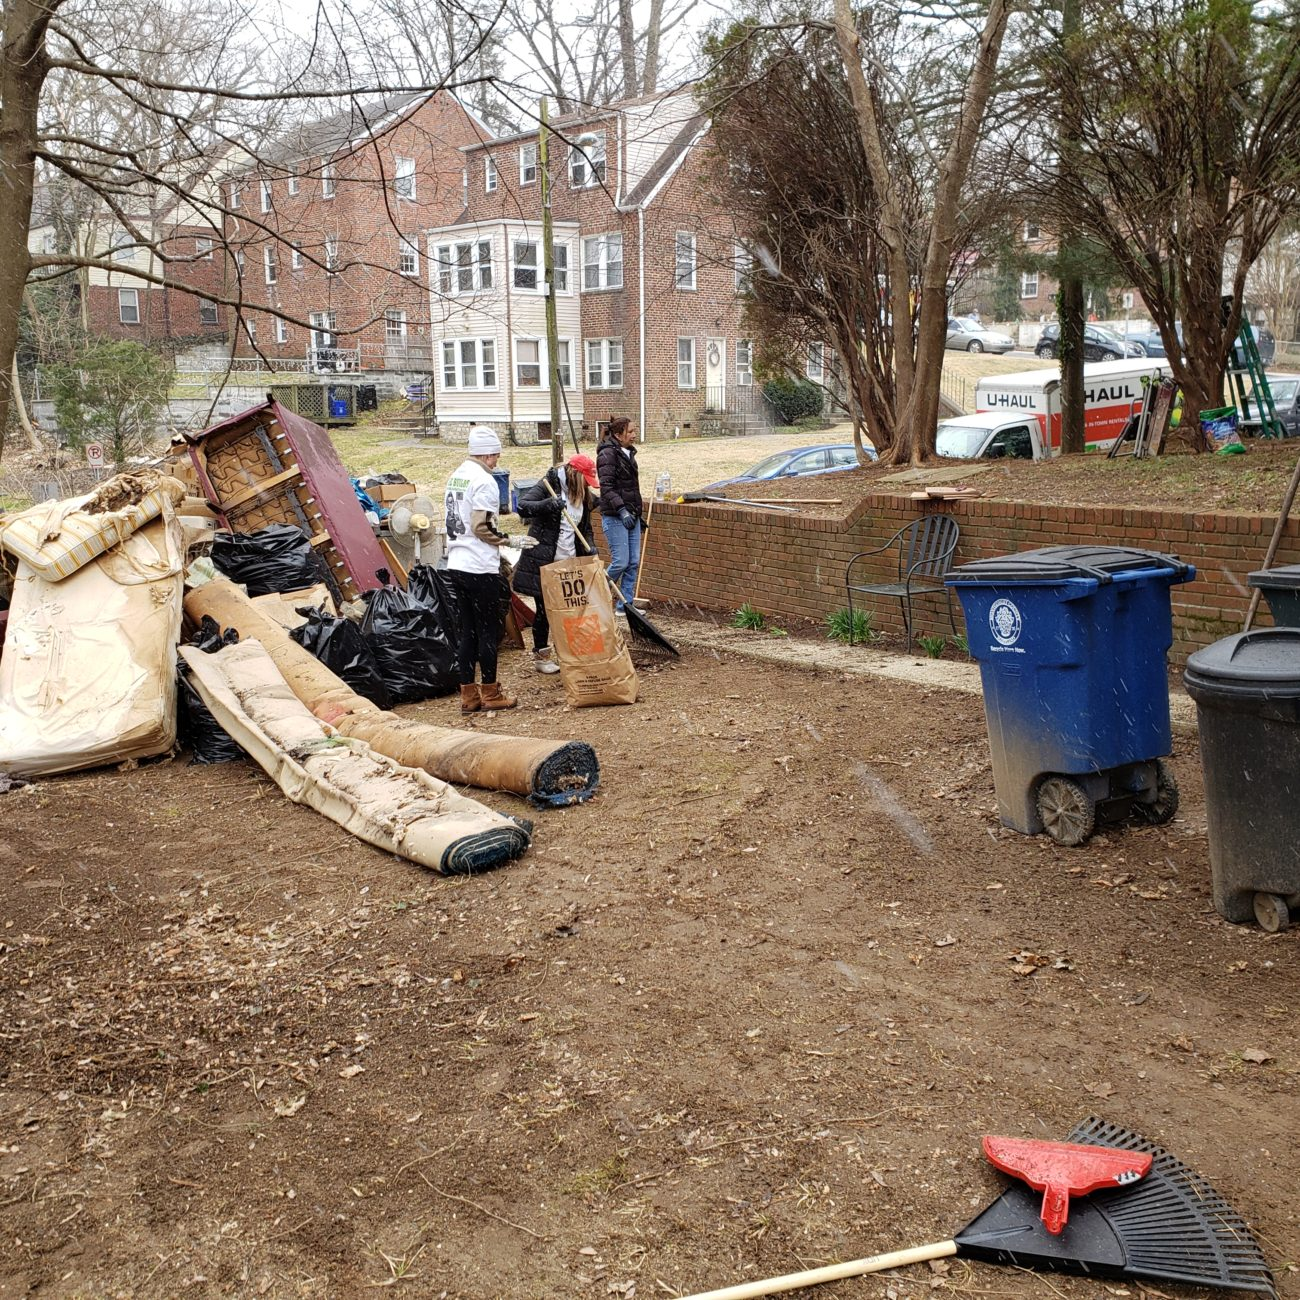 Clearing Junk and Debris During SheBuilds, a Women in Construction Event Through Rebuilding Together Montgomery County